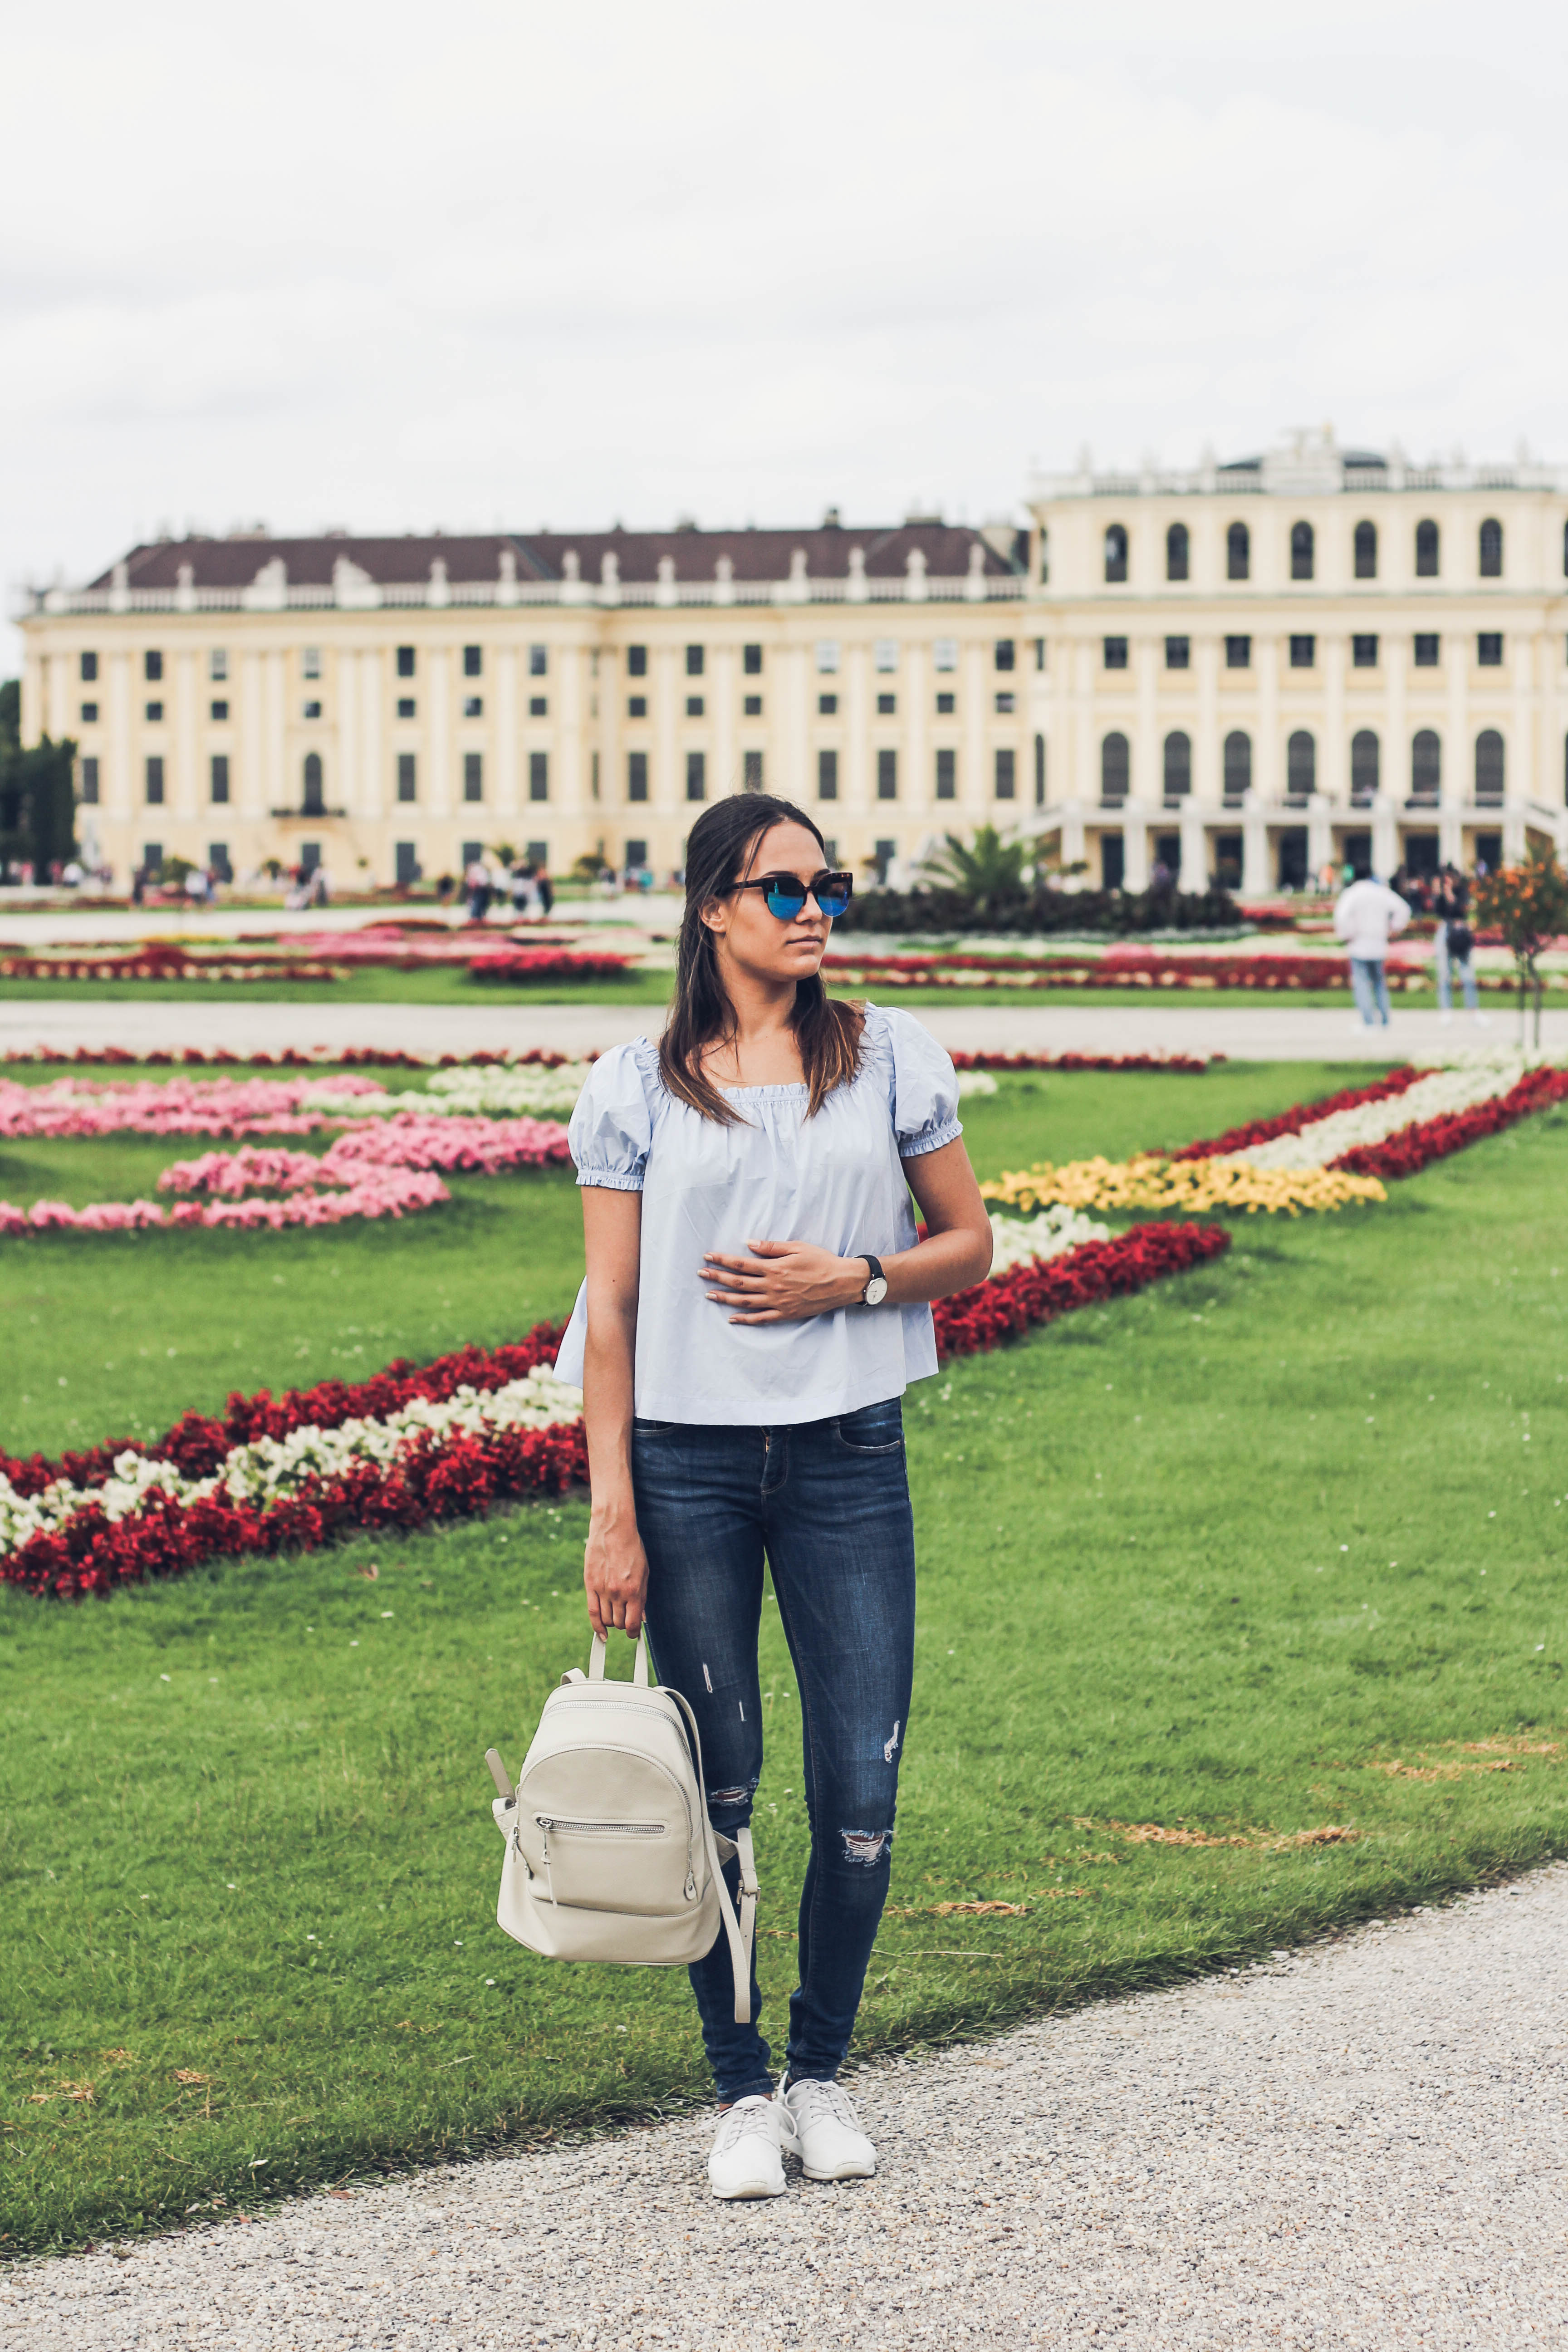 Schoenbrunn Vienna by Bulgarian fashion blogger Quite a Looker www.quitealooker.com H&M Conscious off-the-shoulder top, Zara skinny jeans, Mango backpack